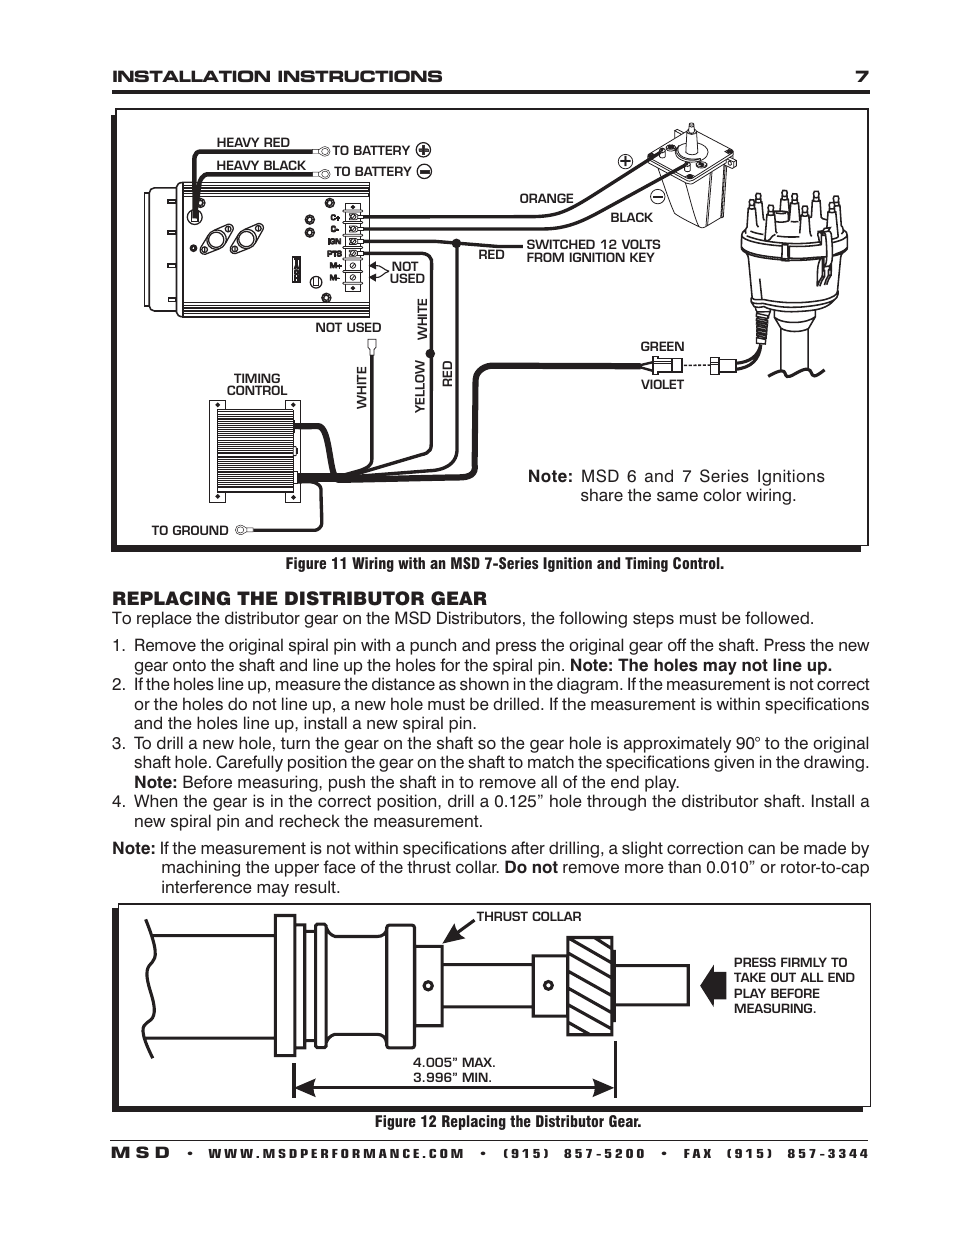 1987 ford 302 alternator wiring diagram ford 302 msd wiring diagram